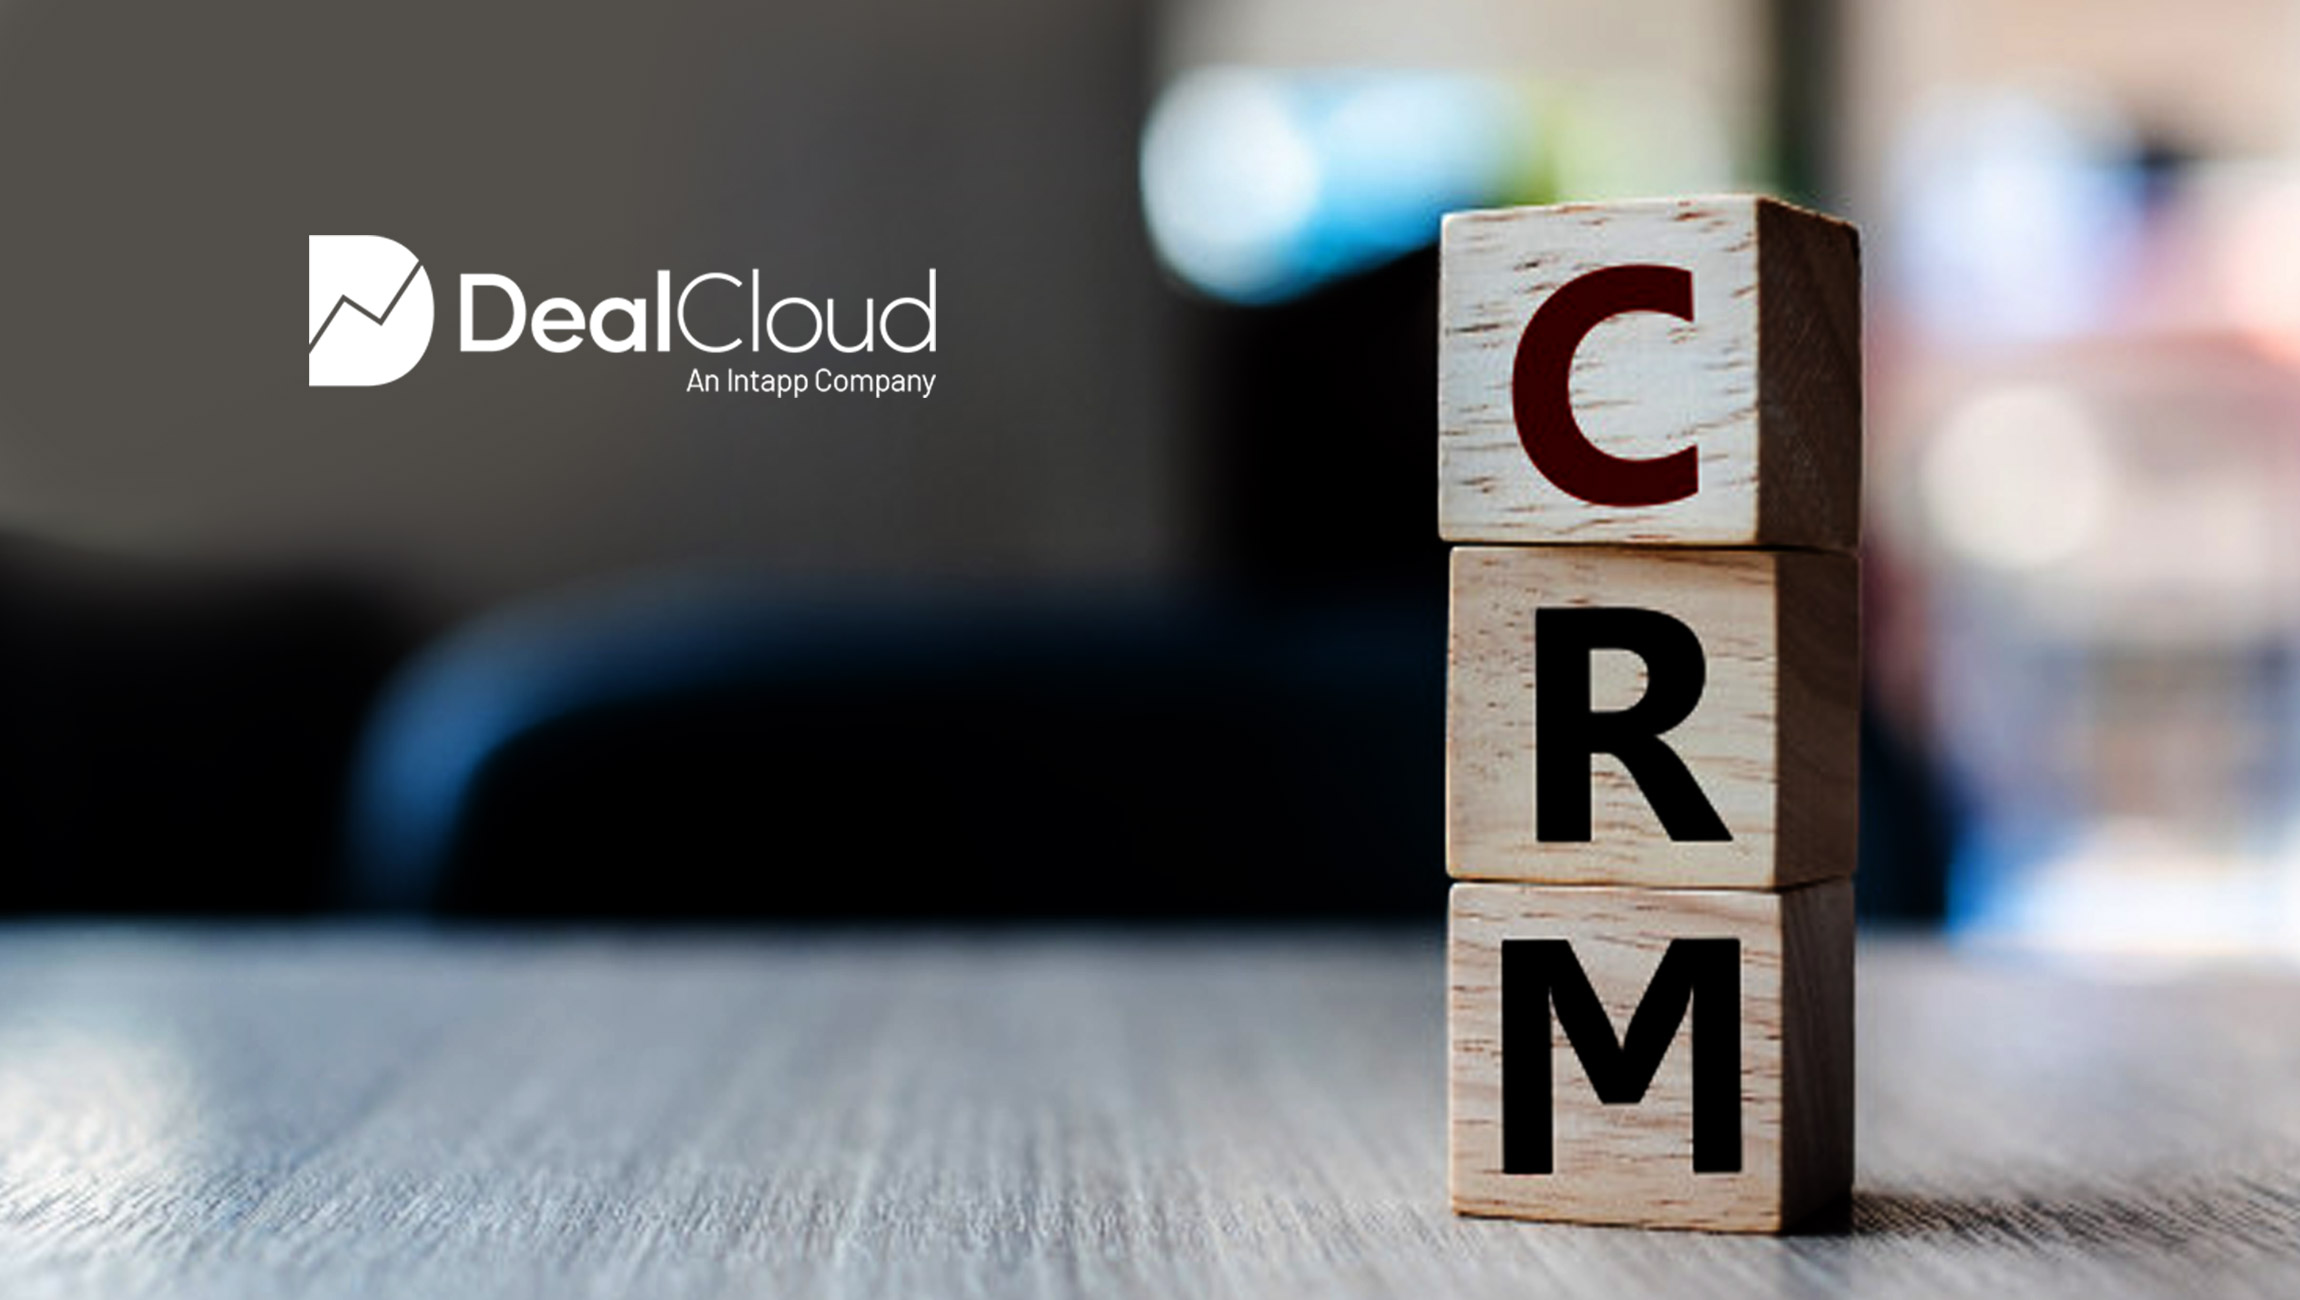 Introducing DealCloud Dispatch: The Integrated Marketing Solution Built for the Capital Markets